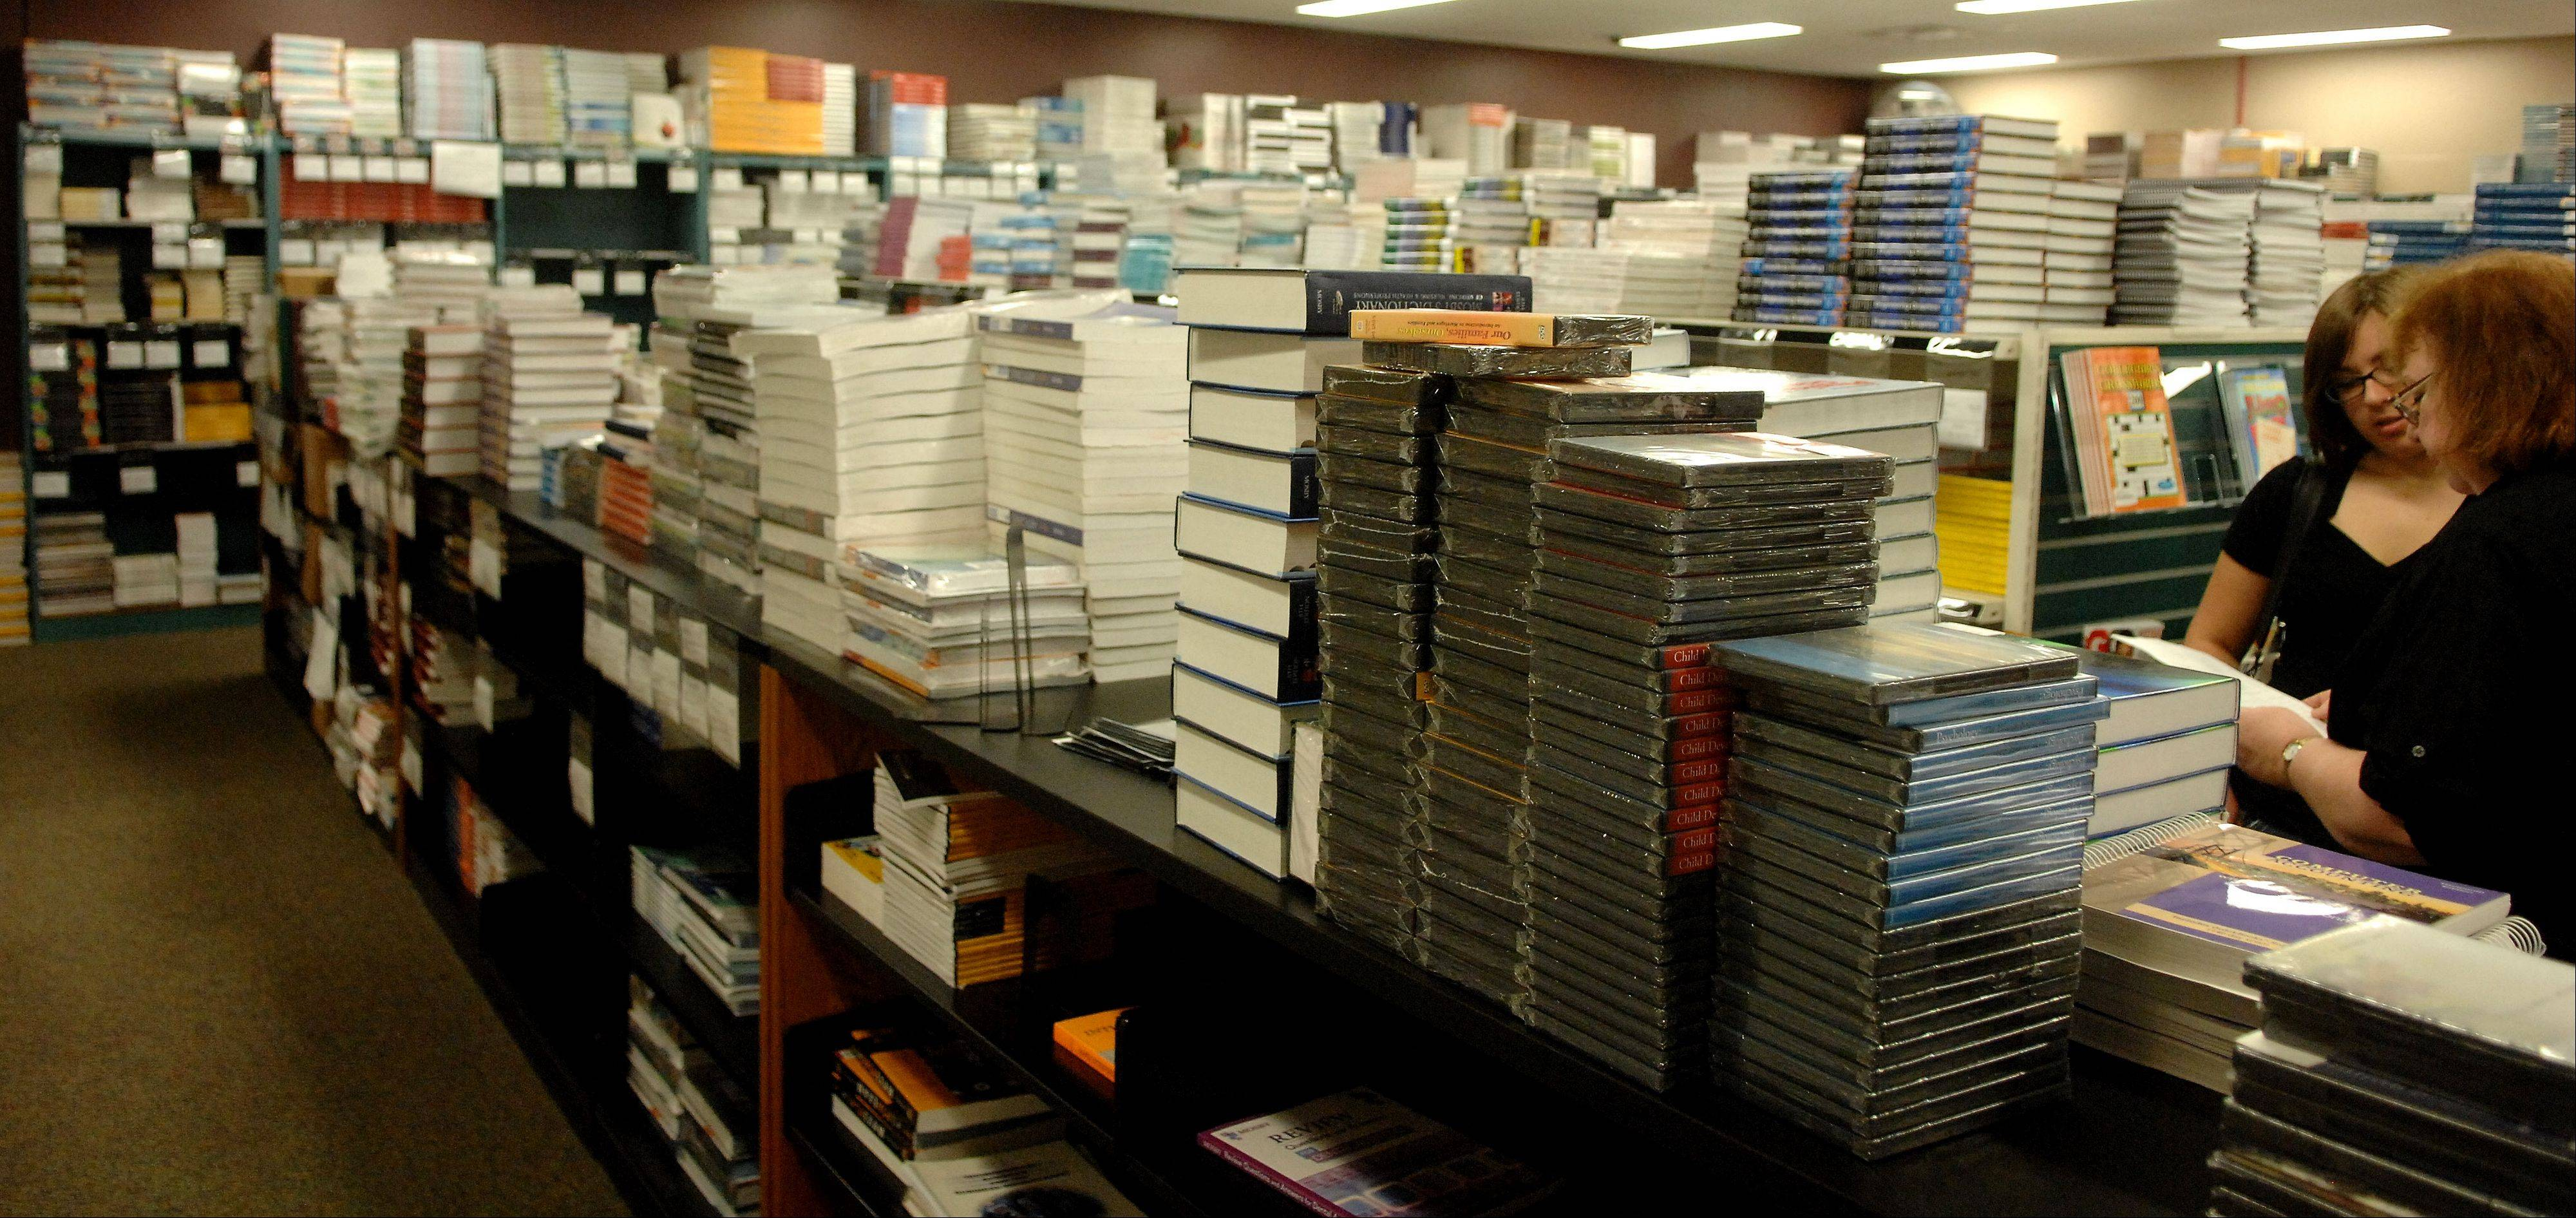 The vast expanse of traditional paper textbooks at the Elgin Community College bookstore could one day be replaced by e-books. ECC is piloting the use of e-books for students in the nursing program. Instead of lugging around heavy books that cost hundreds of dollars, students in the program will be able to download all of their course materials on to a tablet or laptop.